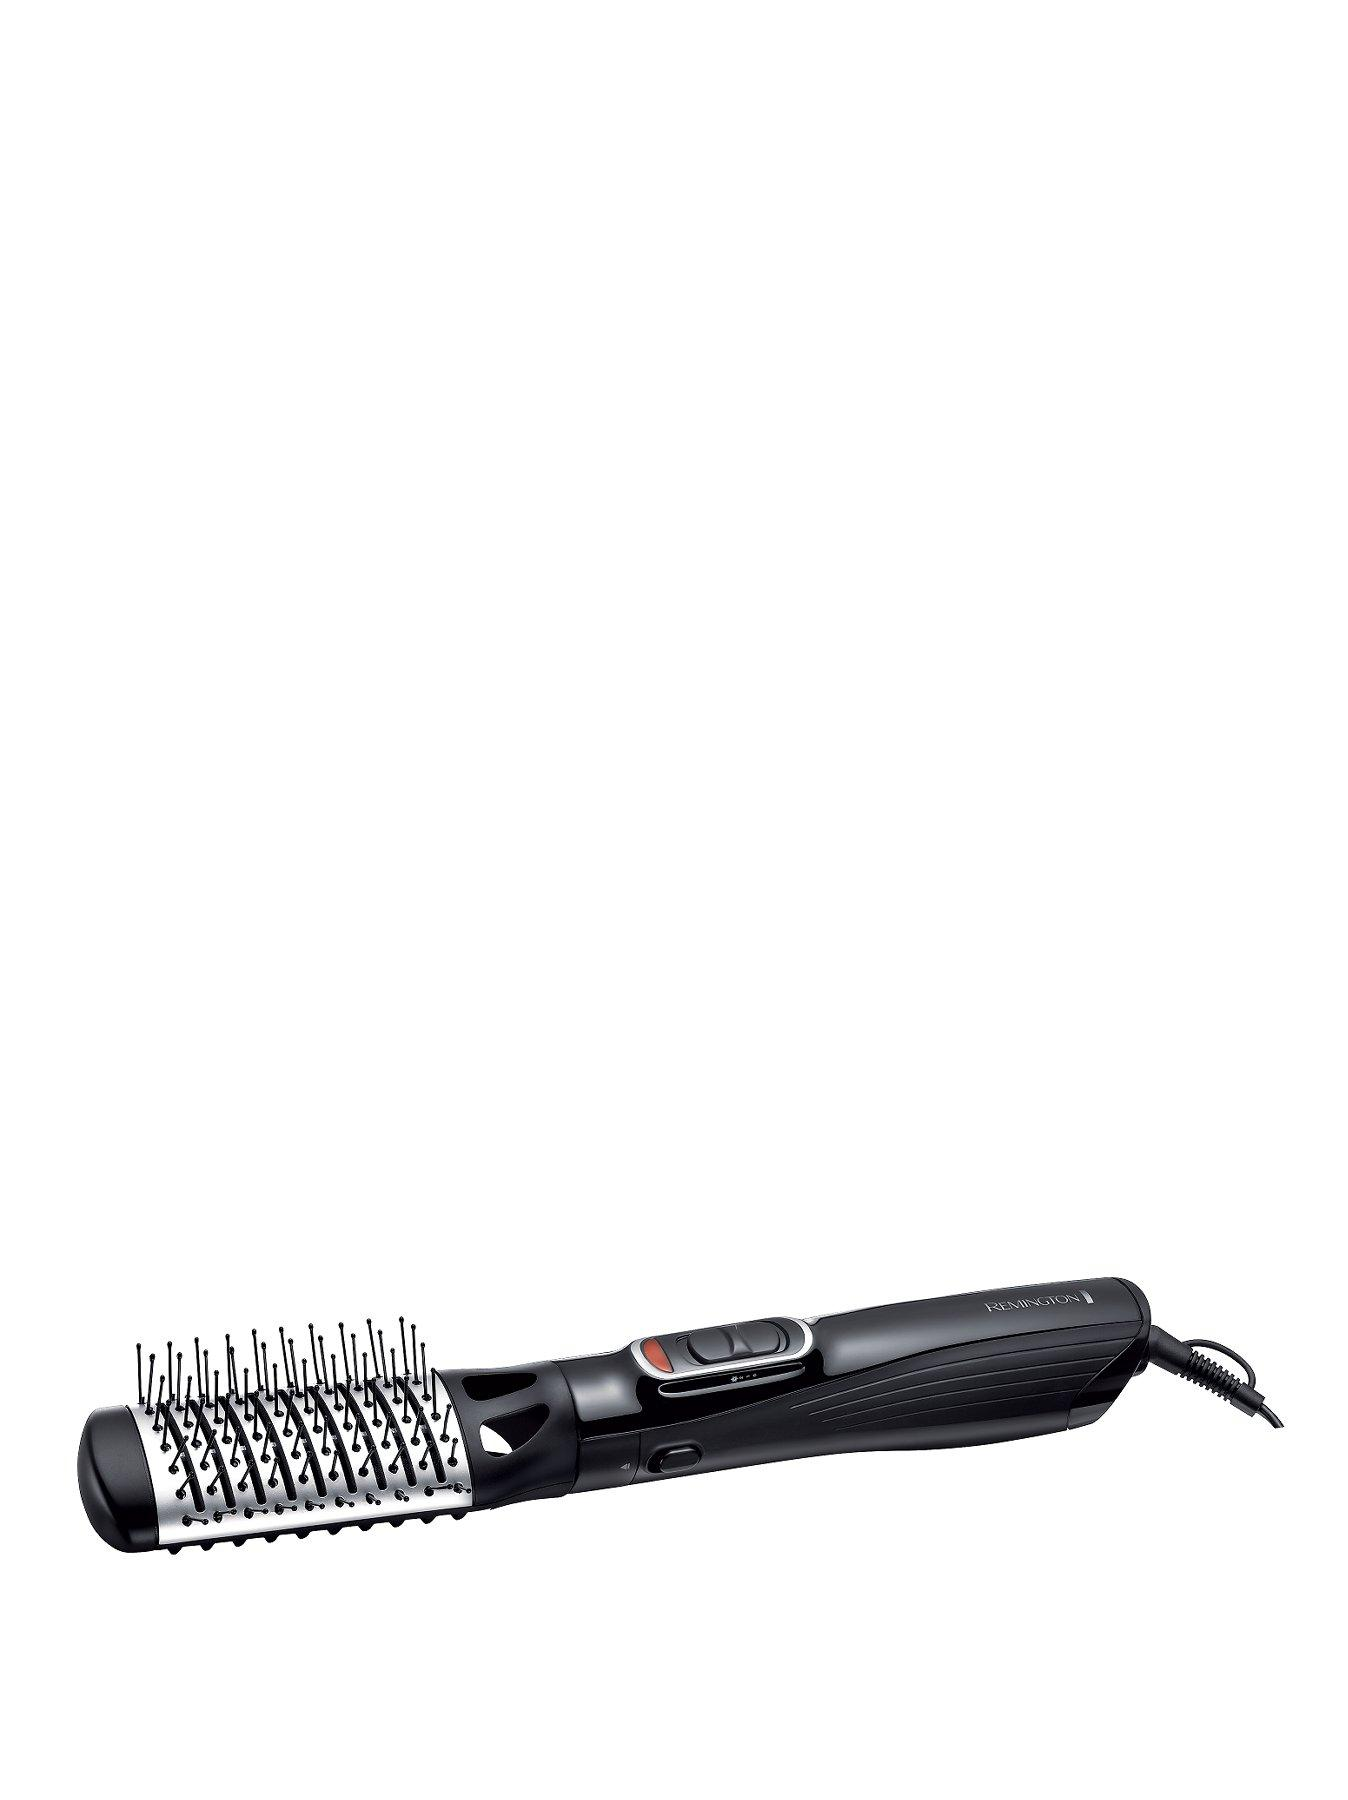 Remington AS1220 Amaze Smooth and Volume Airtstyler